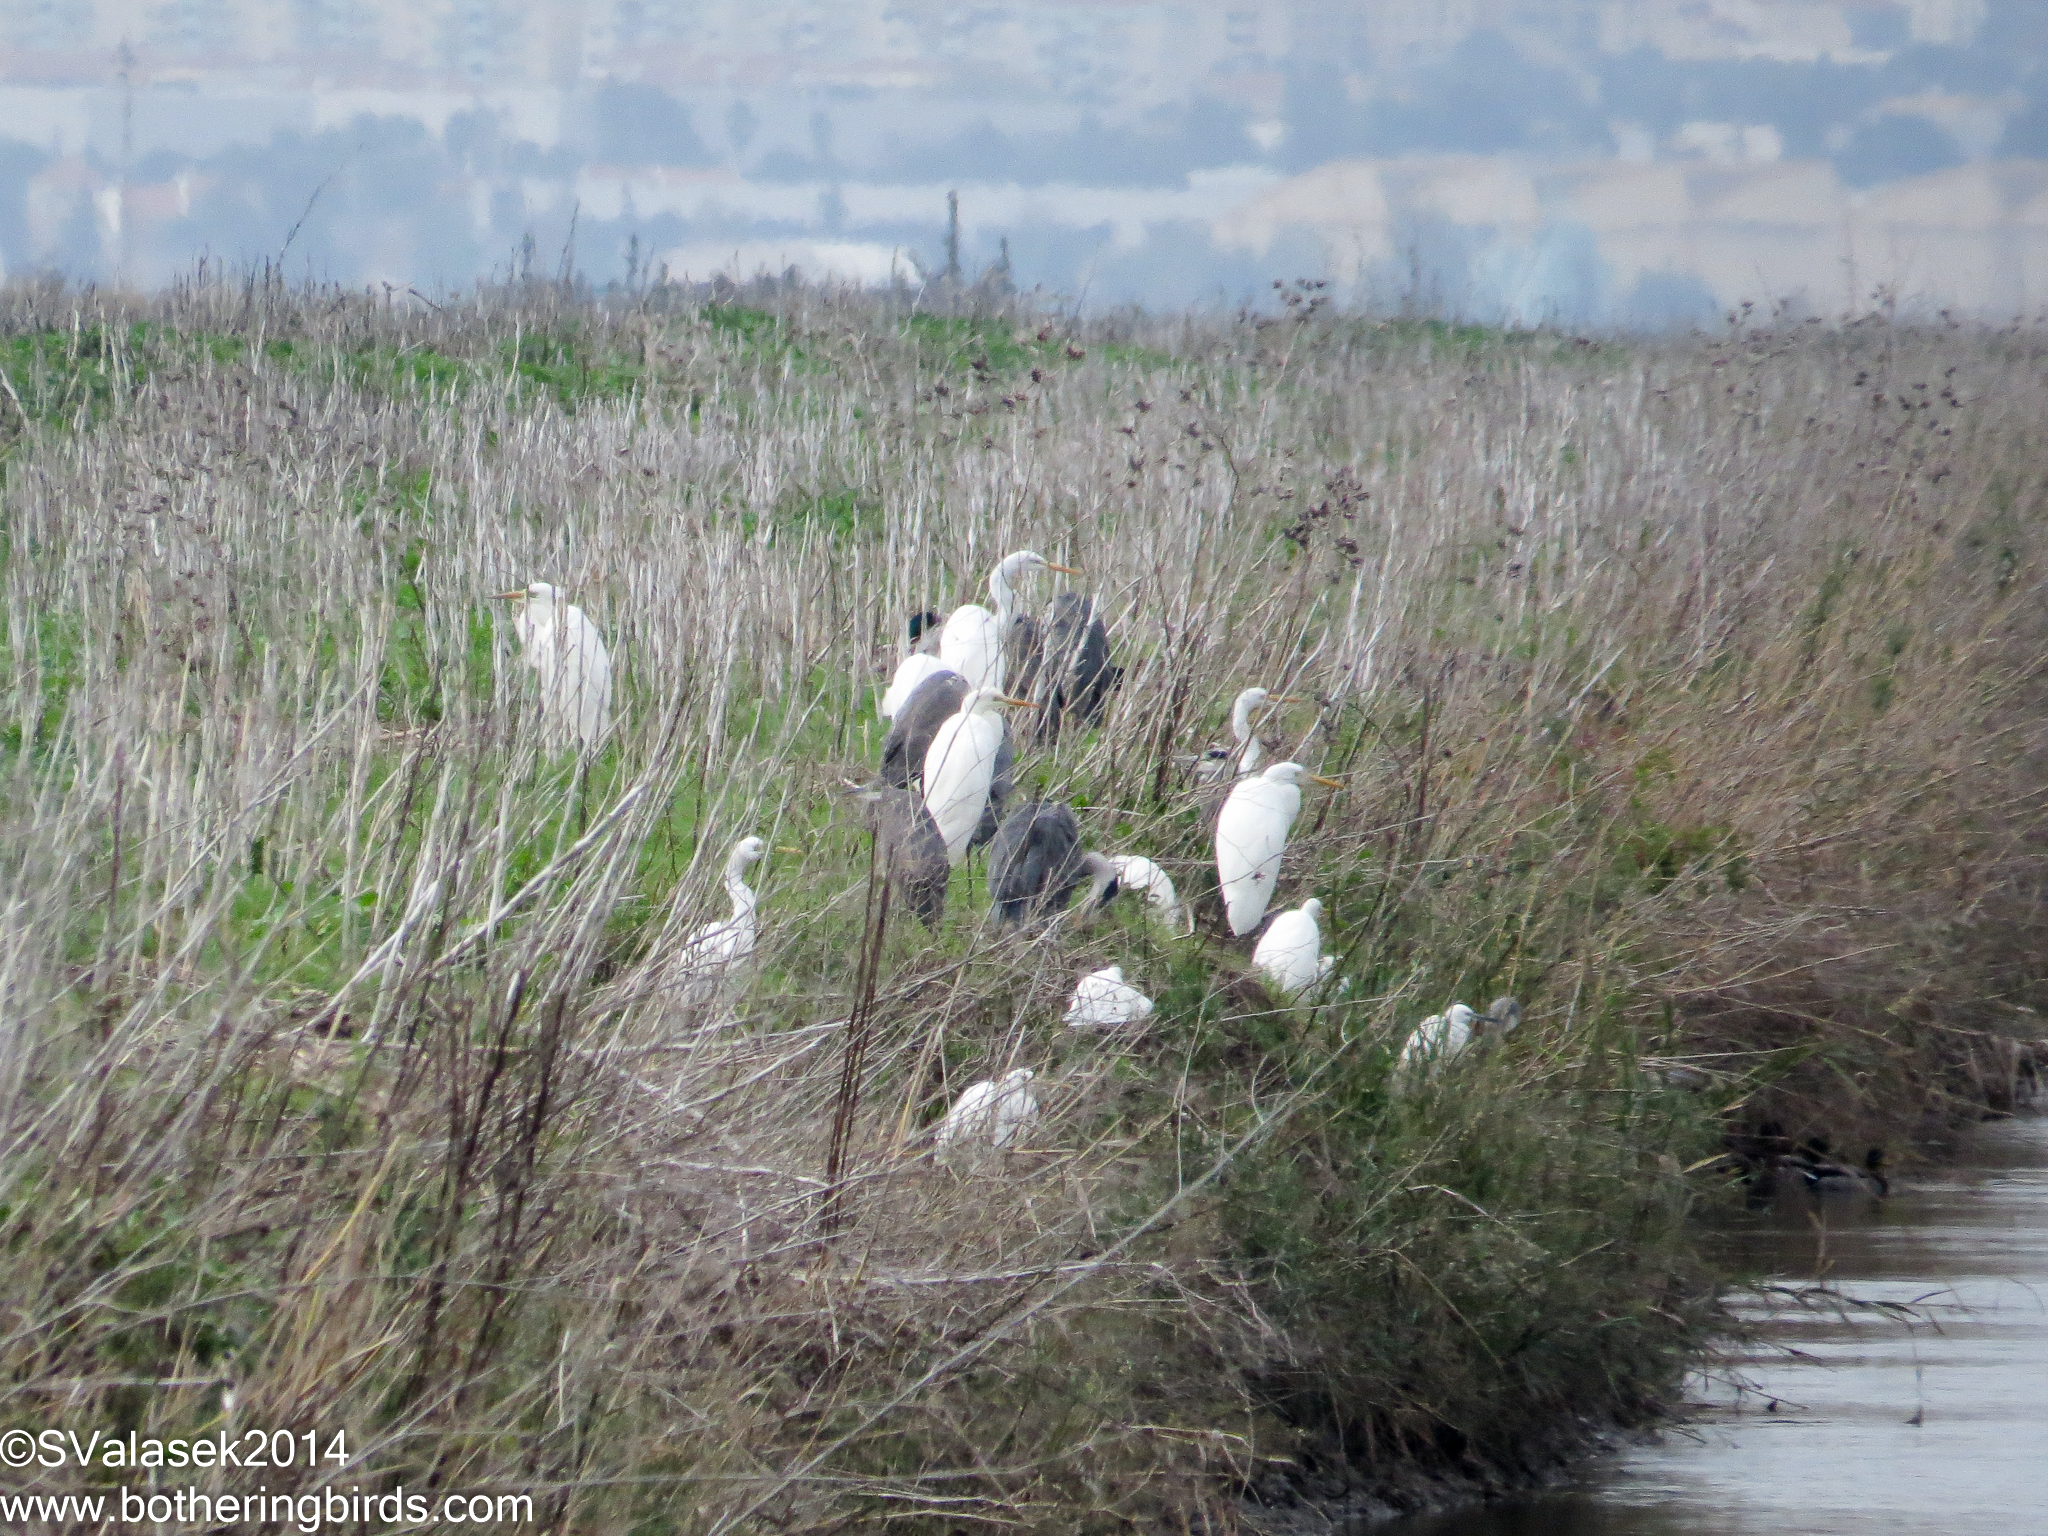 Great Egrets, Grey Heron, Cattle Egrets